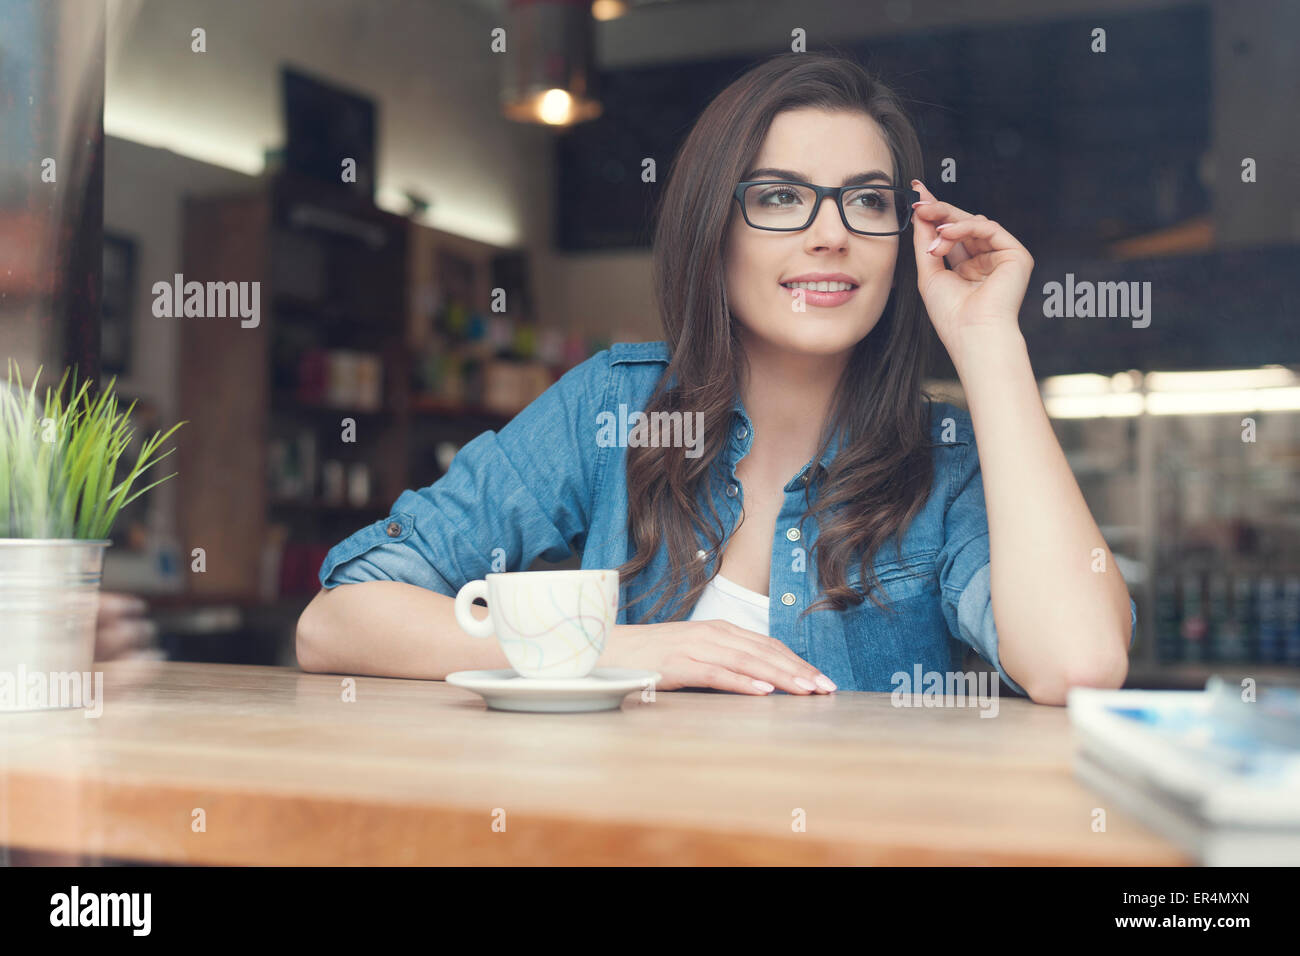 Portrait de belle femme au café. Cracovie, Pologne Photo Stock